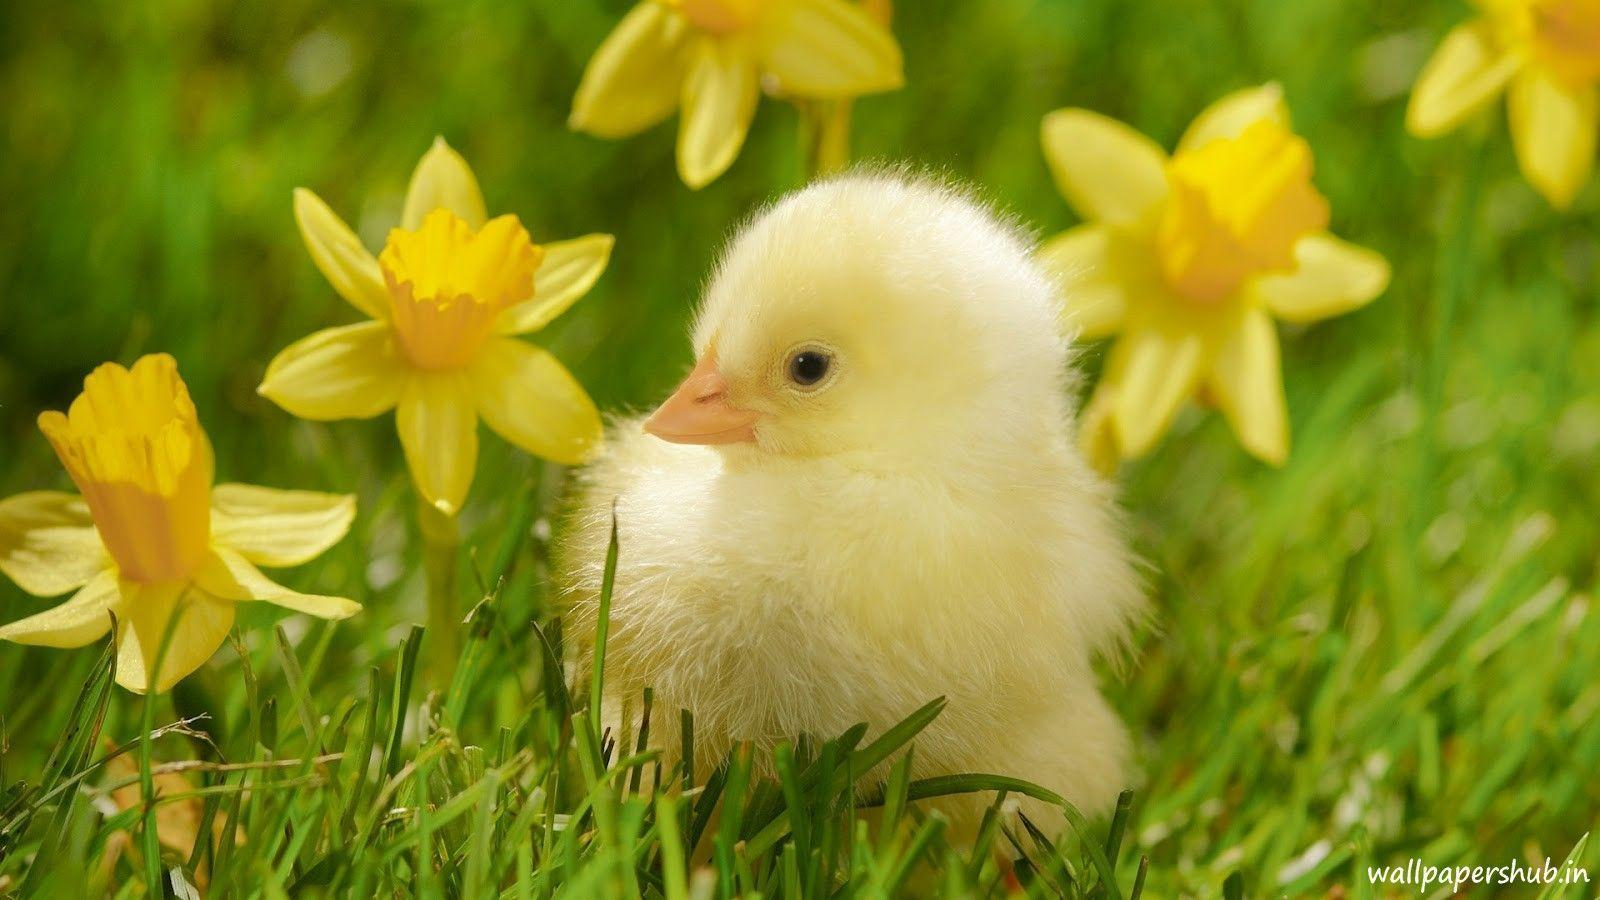 Cute Baby Animal 2015 Wallpapers - Wallpaper Cave